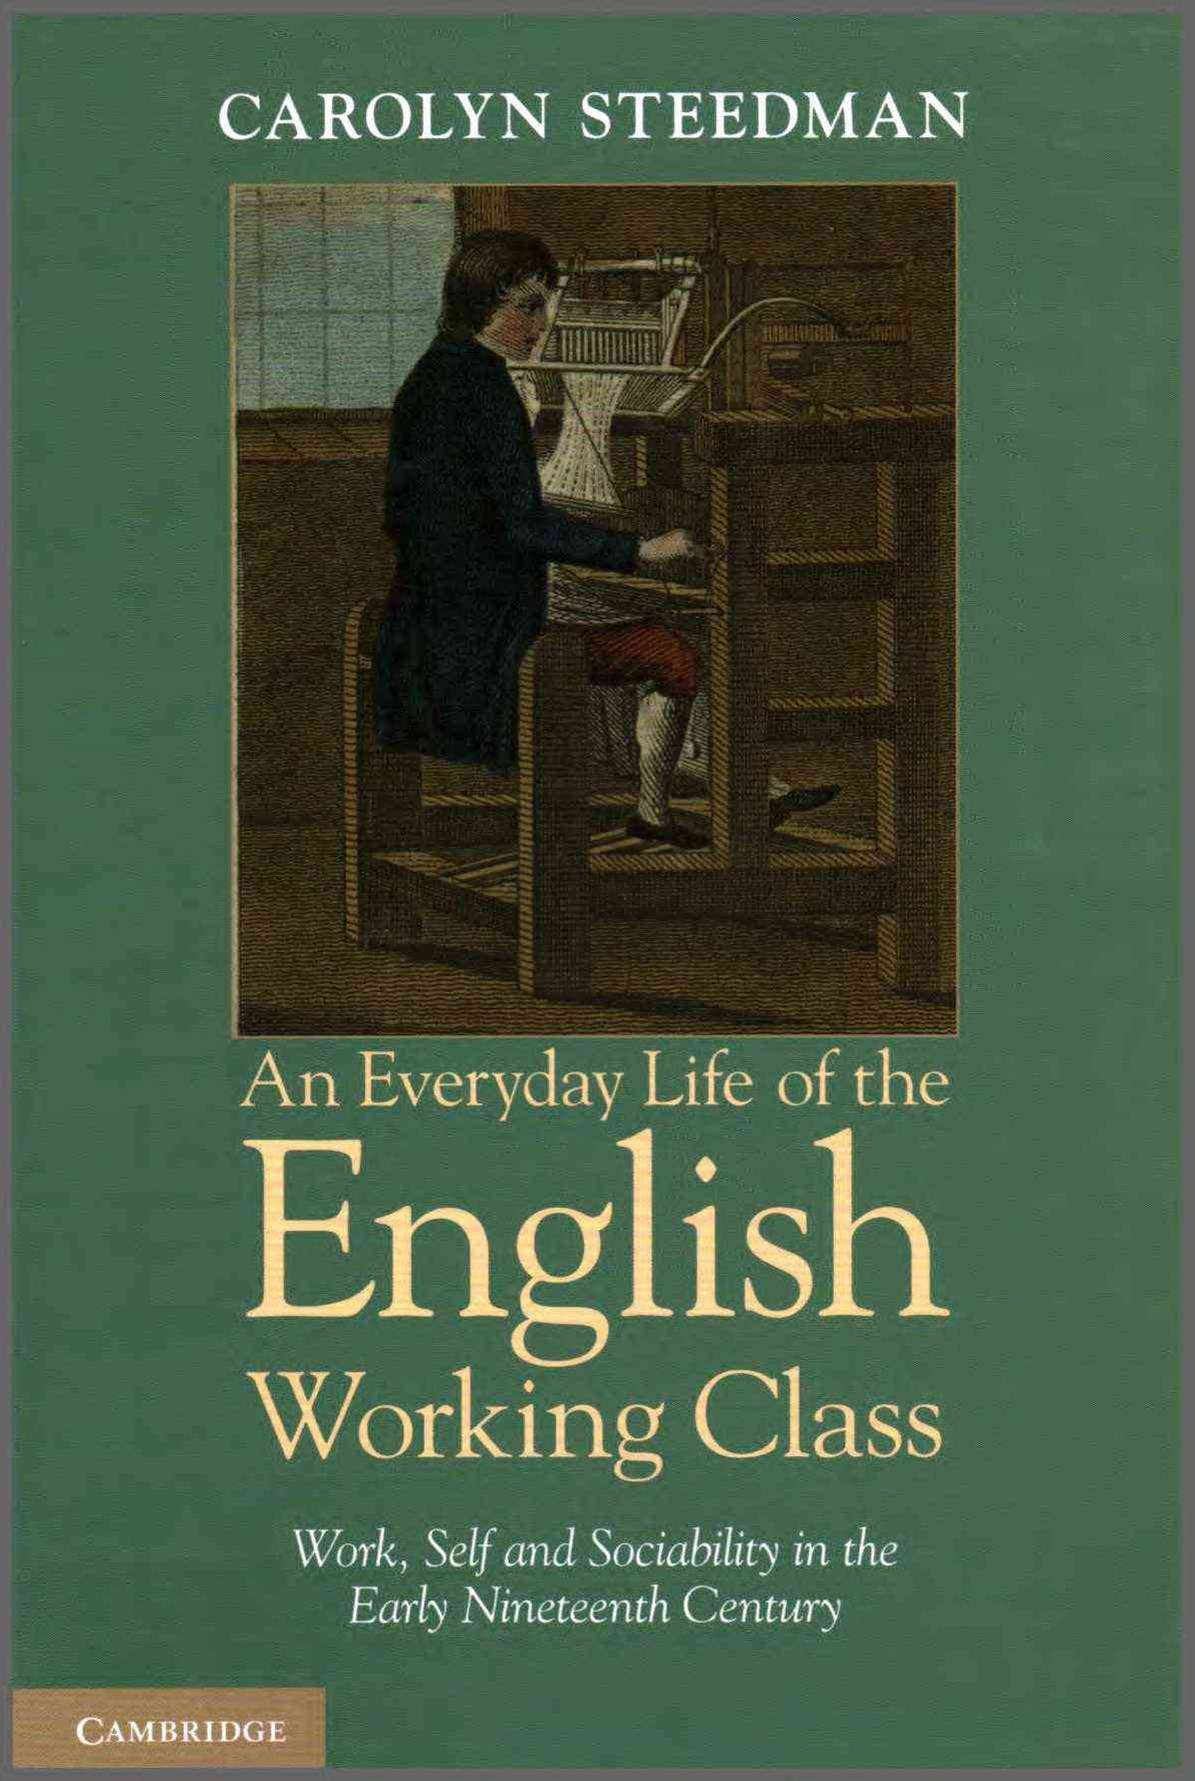 An Everyday Life of the English Working Class